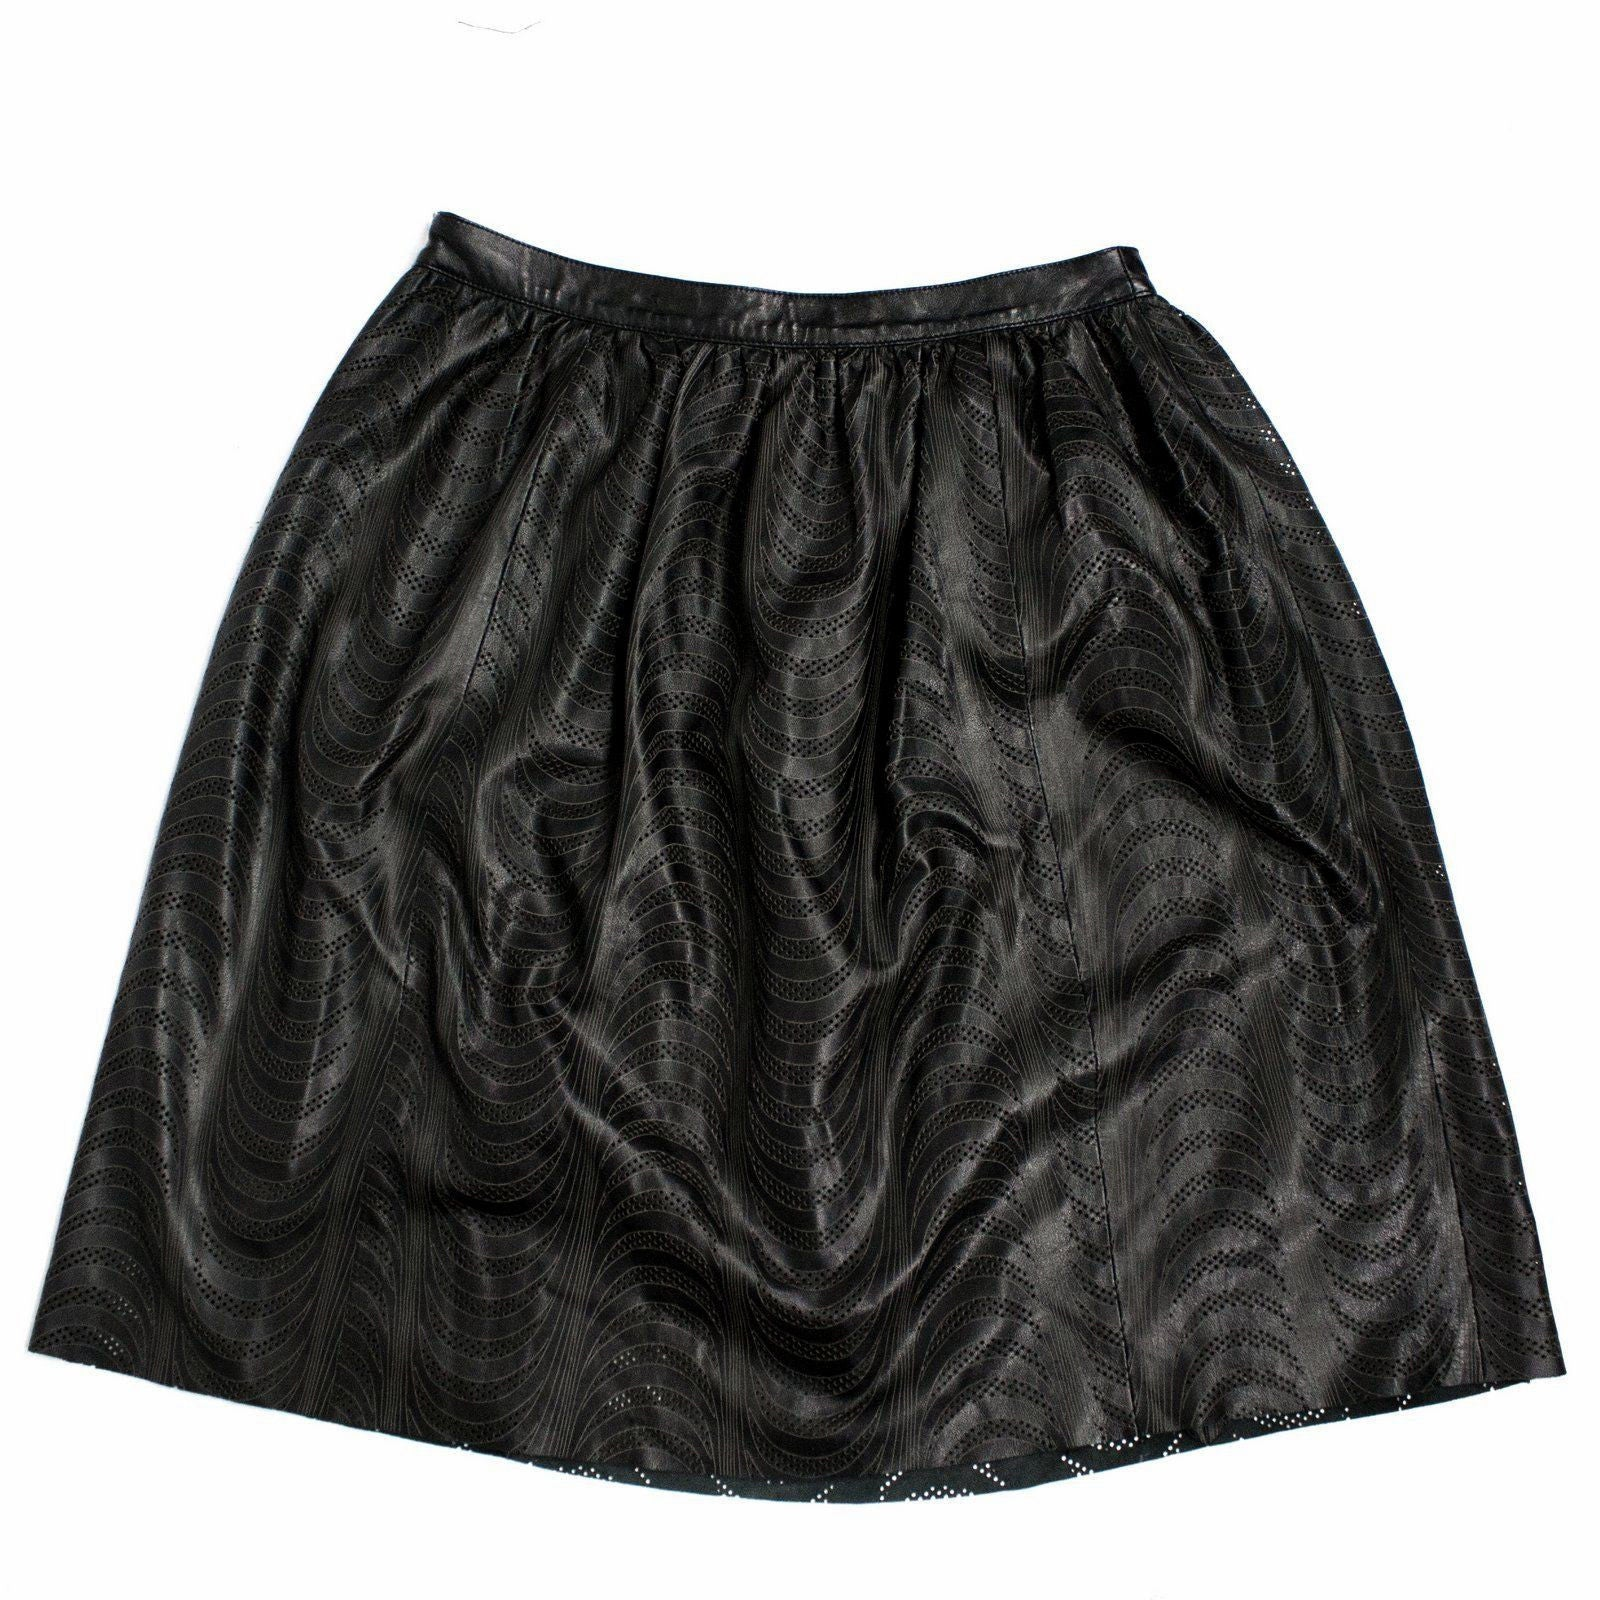 DROMe Black Soft&Light Sheep Skin Perforated Leather A-line Ruffled Skirt SIZE L - secondfirst